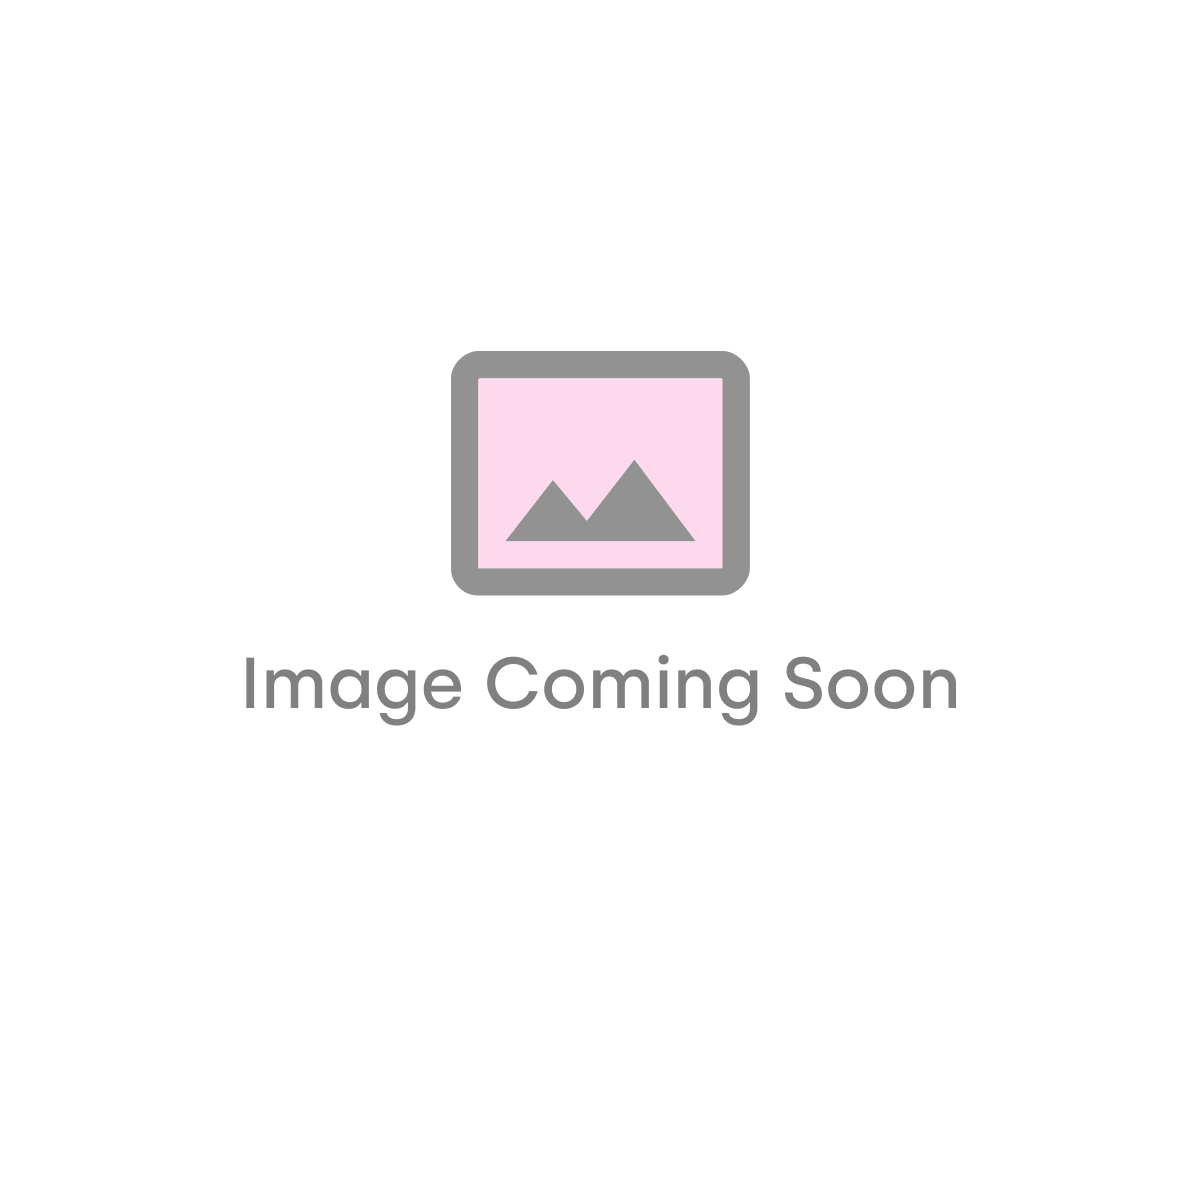 Aquadart 1000mm Wetroom Panel - Smoked Glass (18681)